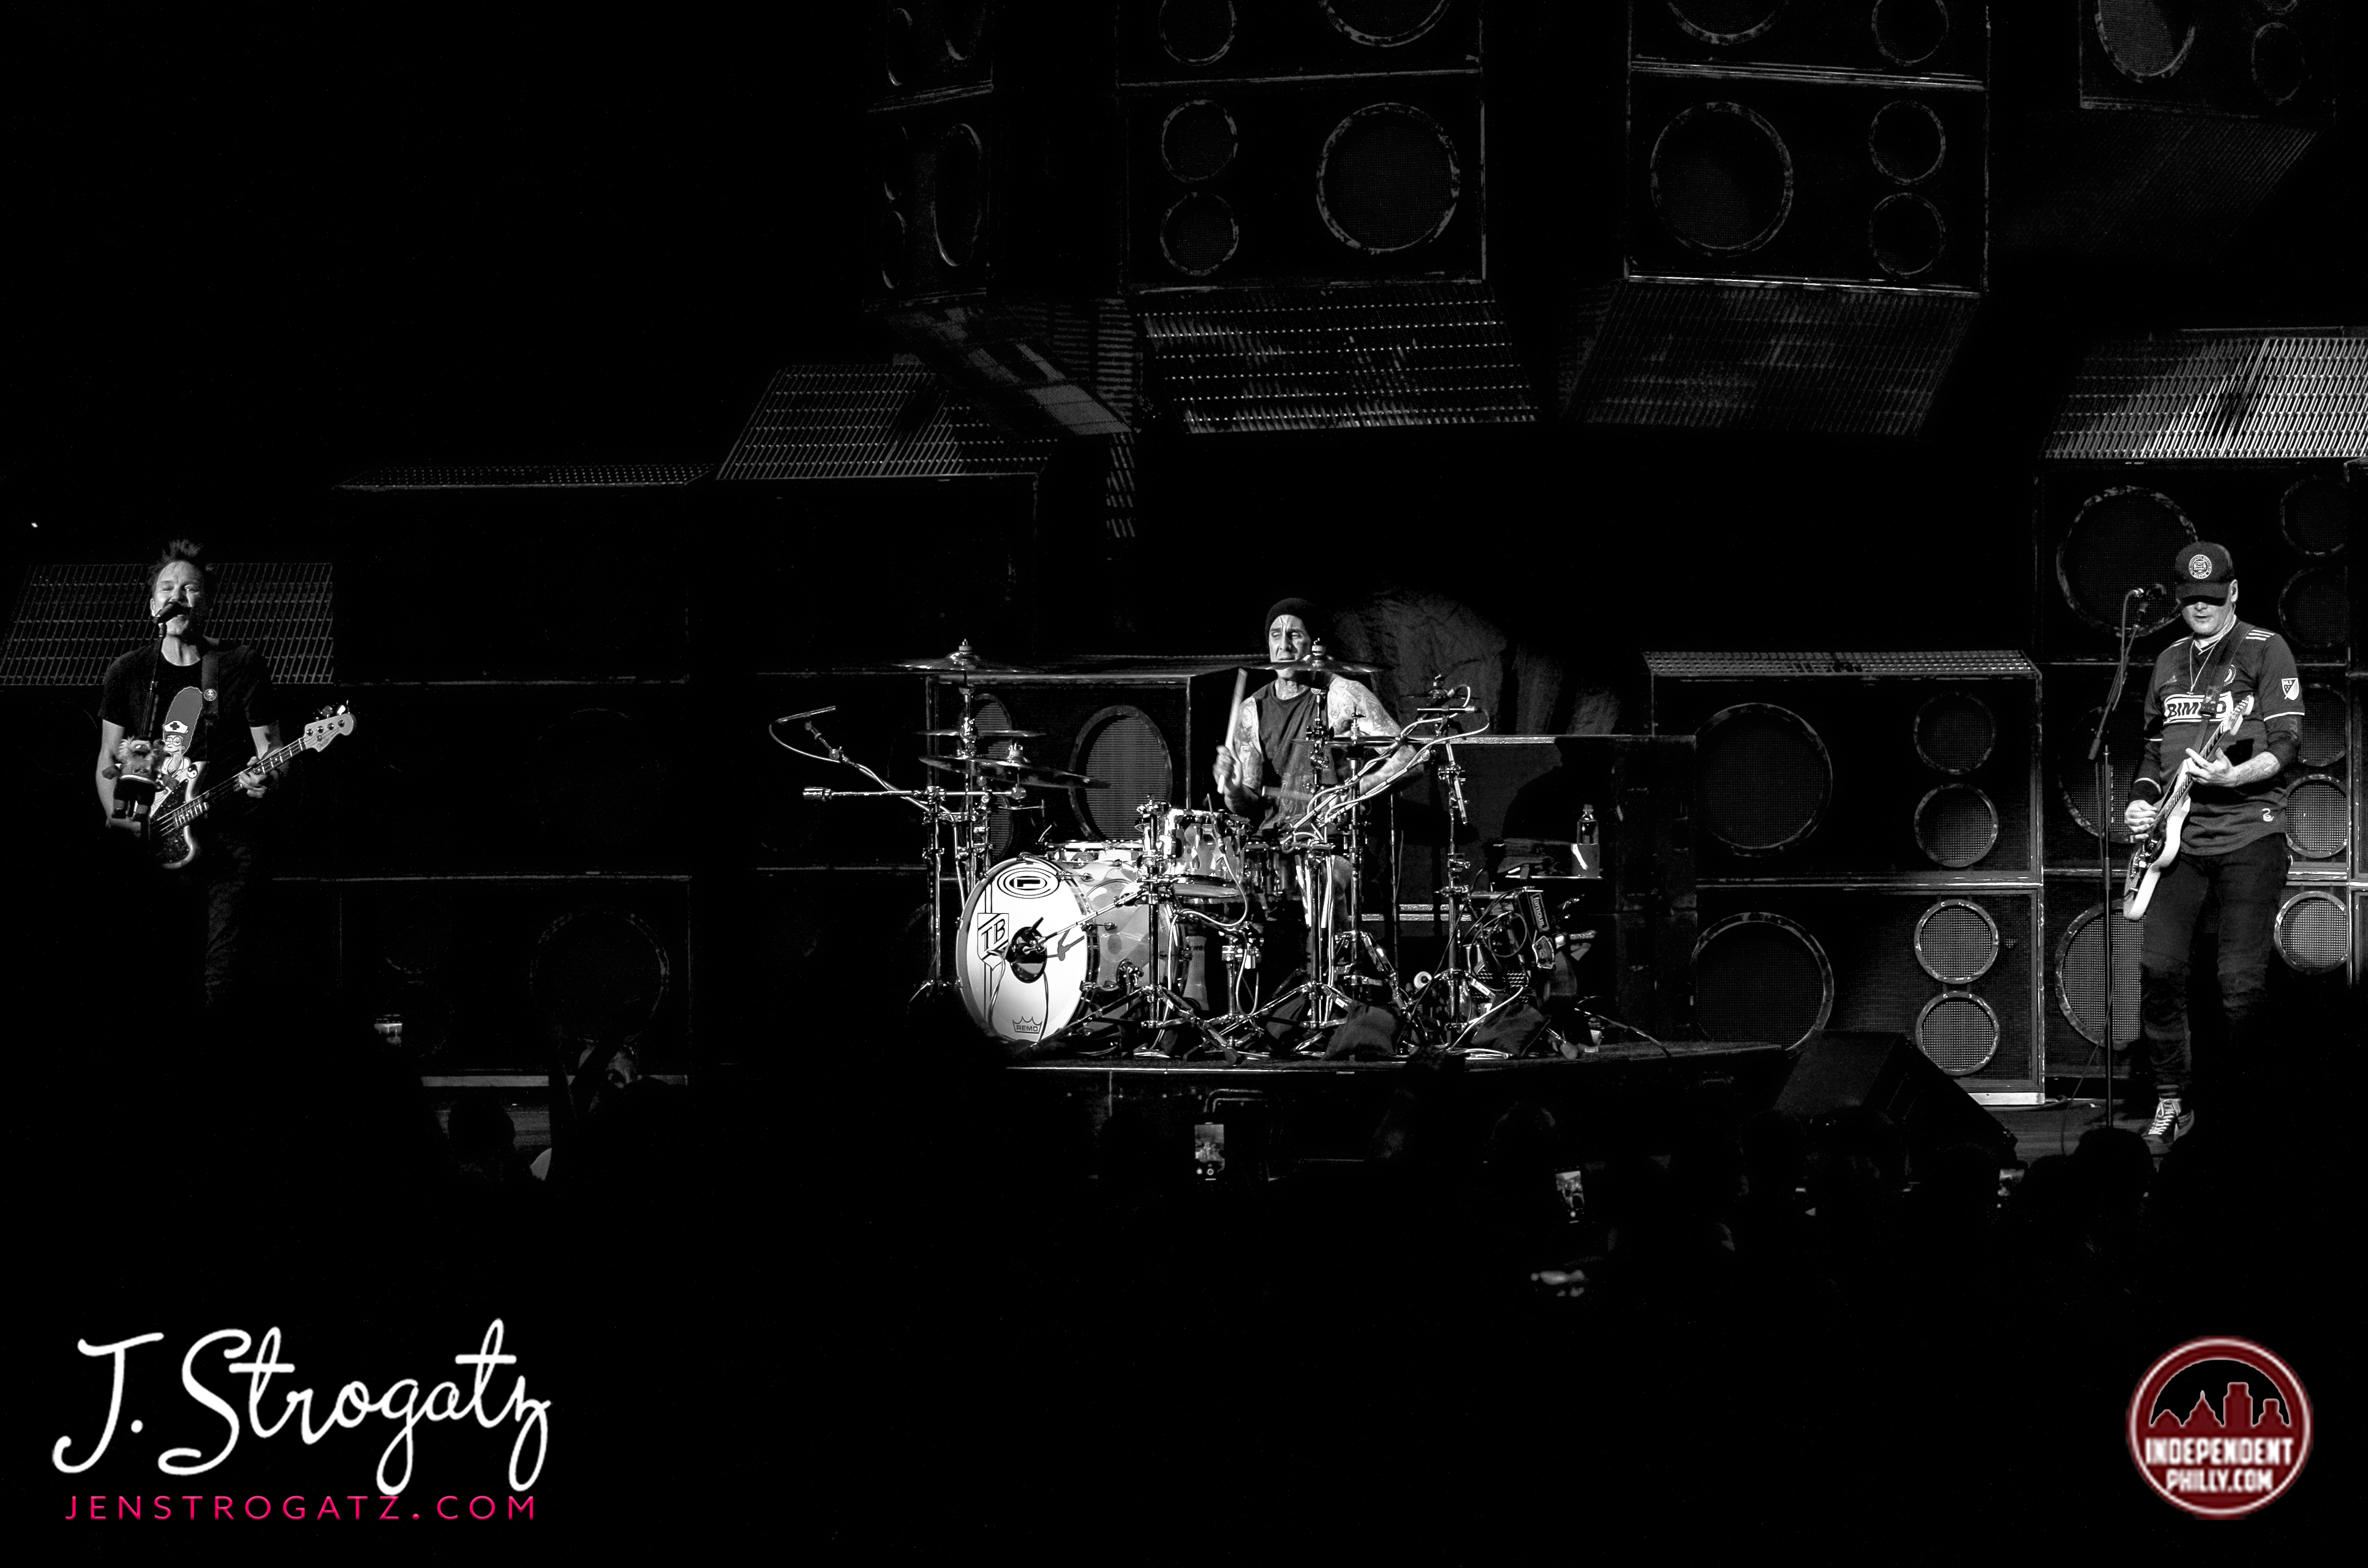 Blink-182 on stage performing live in Camden, NJ. by Jen Strogatz.